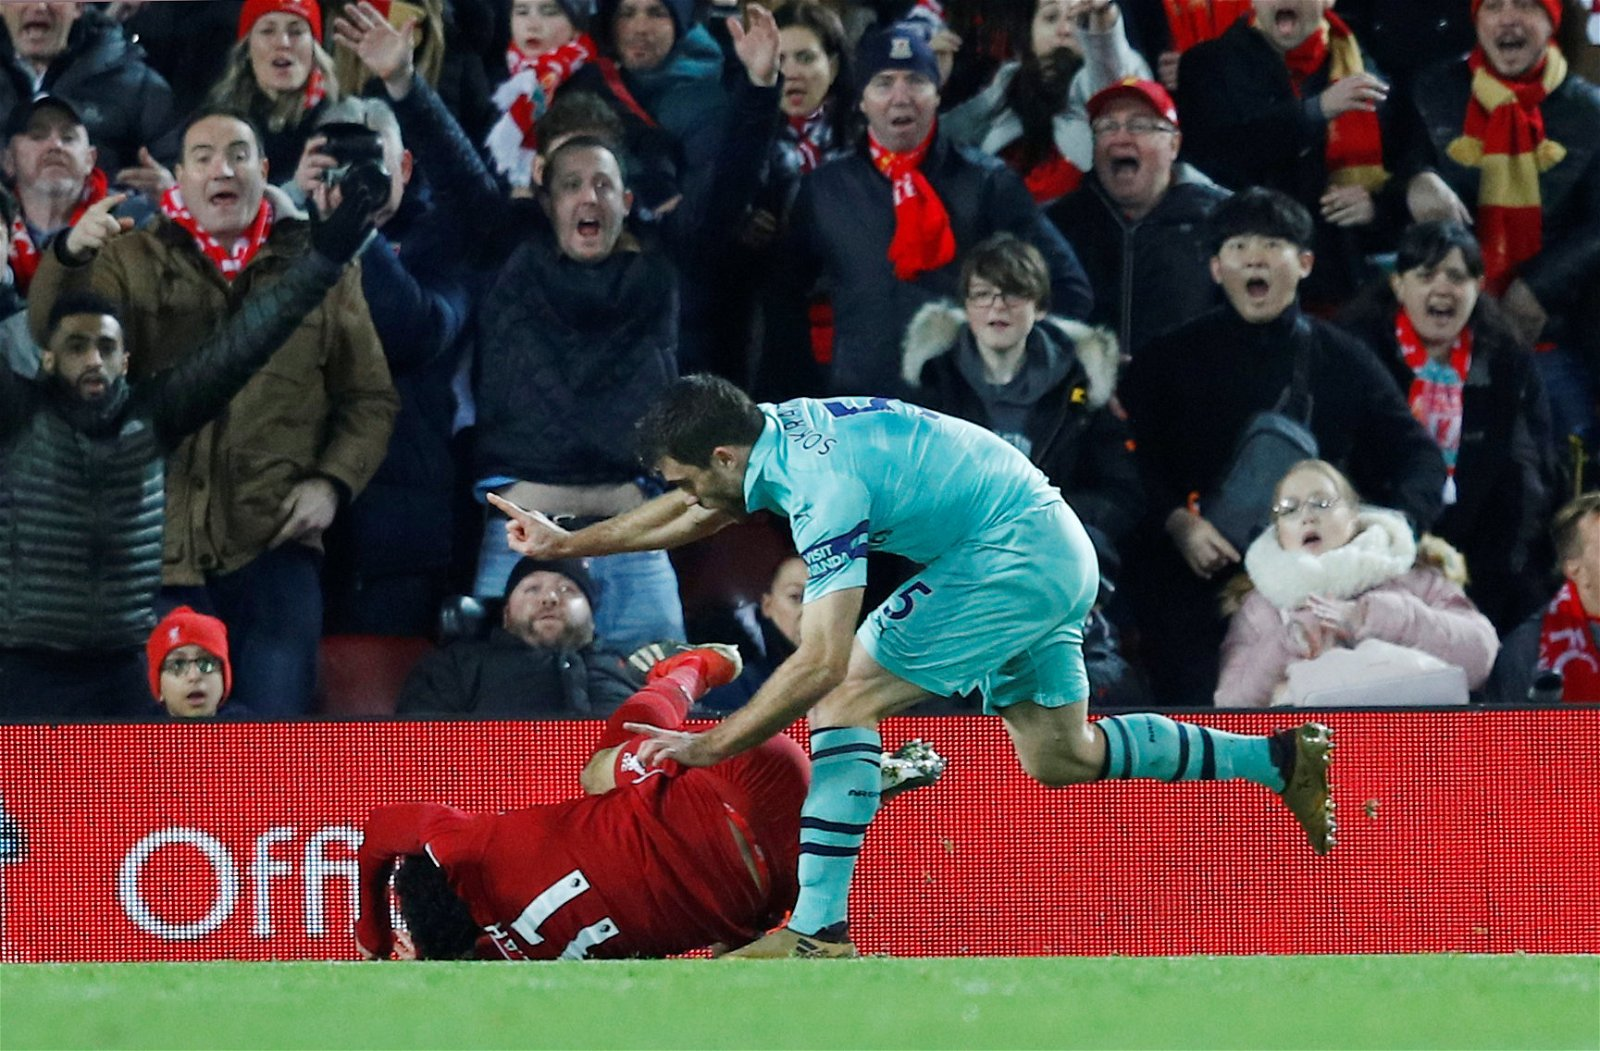 Liverpool's Mohamed Salah is fouled by Arsenal's Sokratis Papastathopoulos